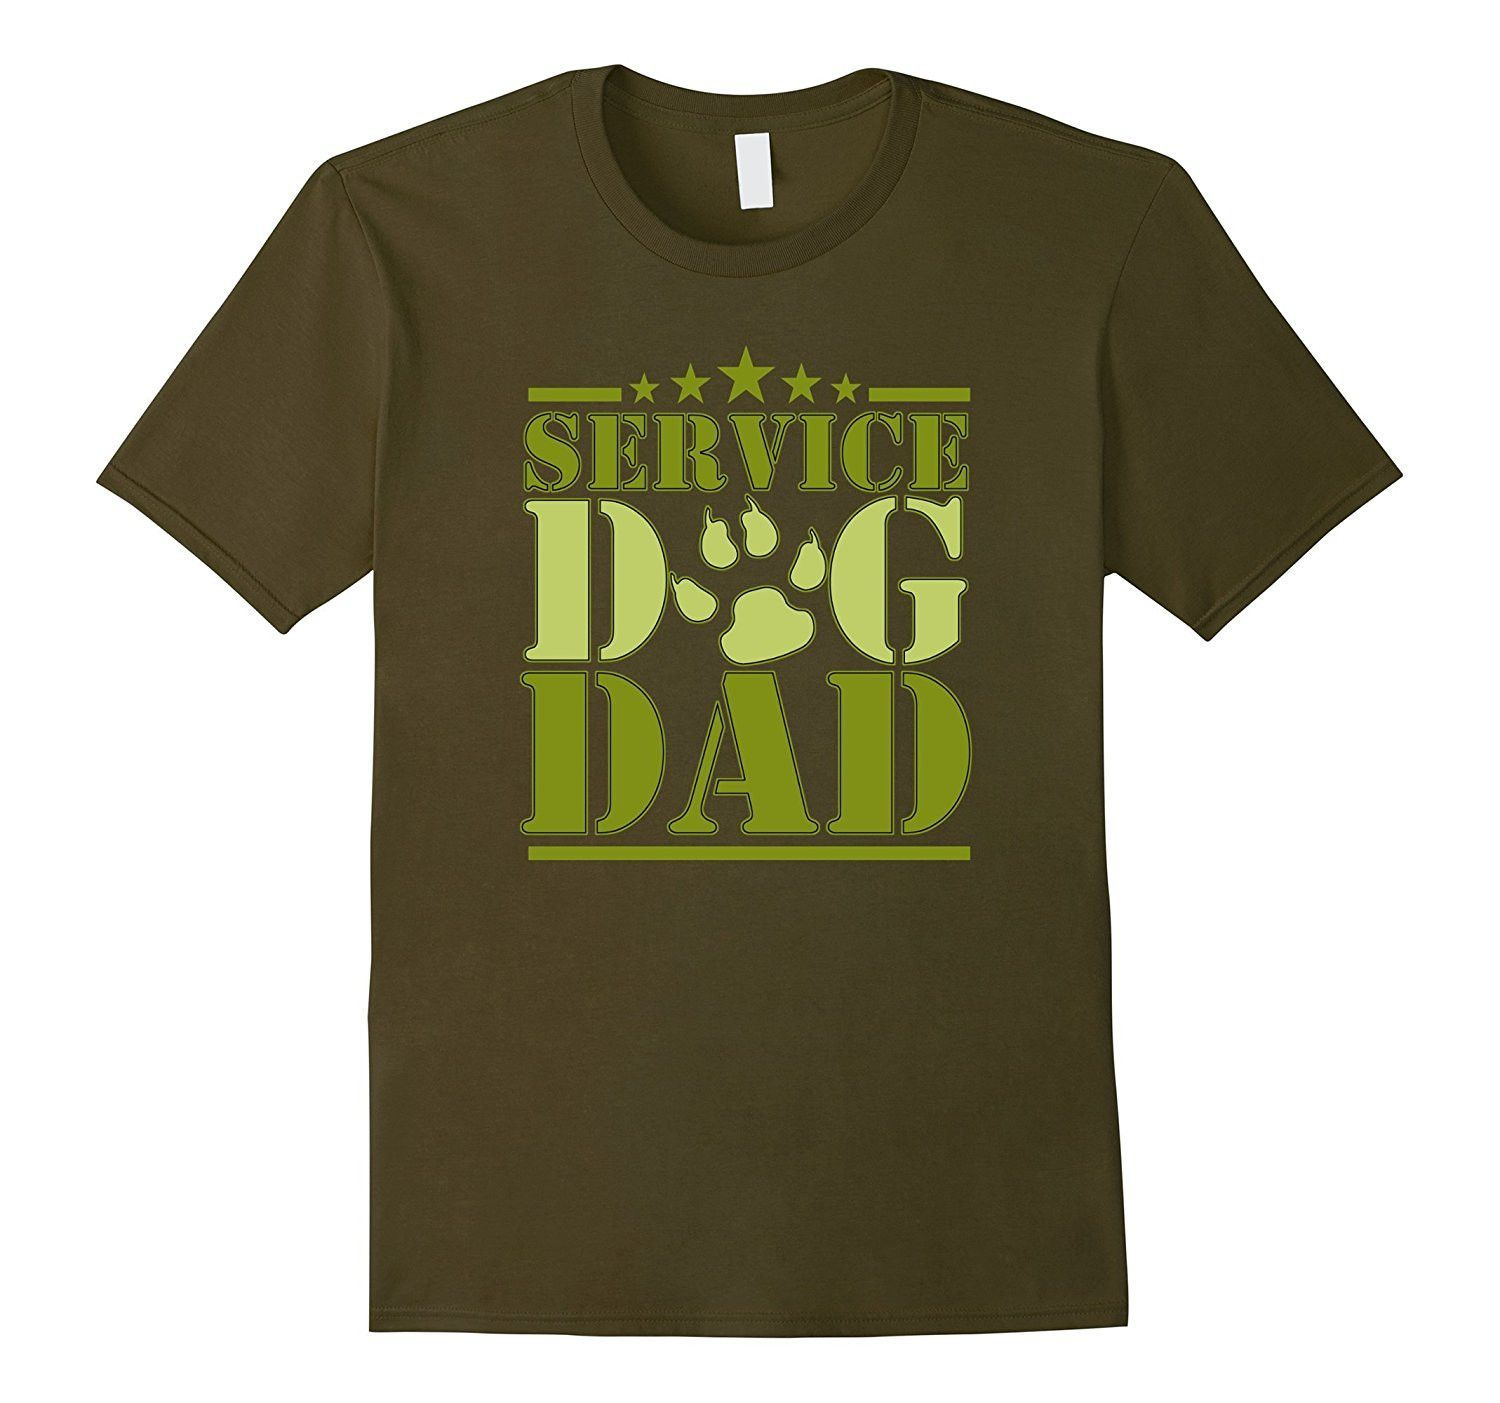 Men's Service Dog Dad Shirt for Disabled American